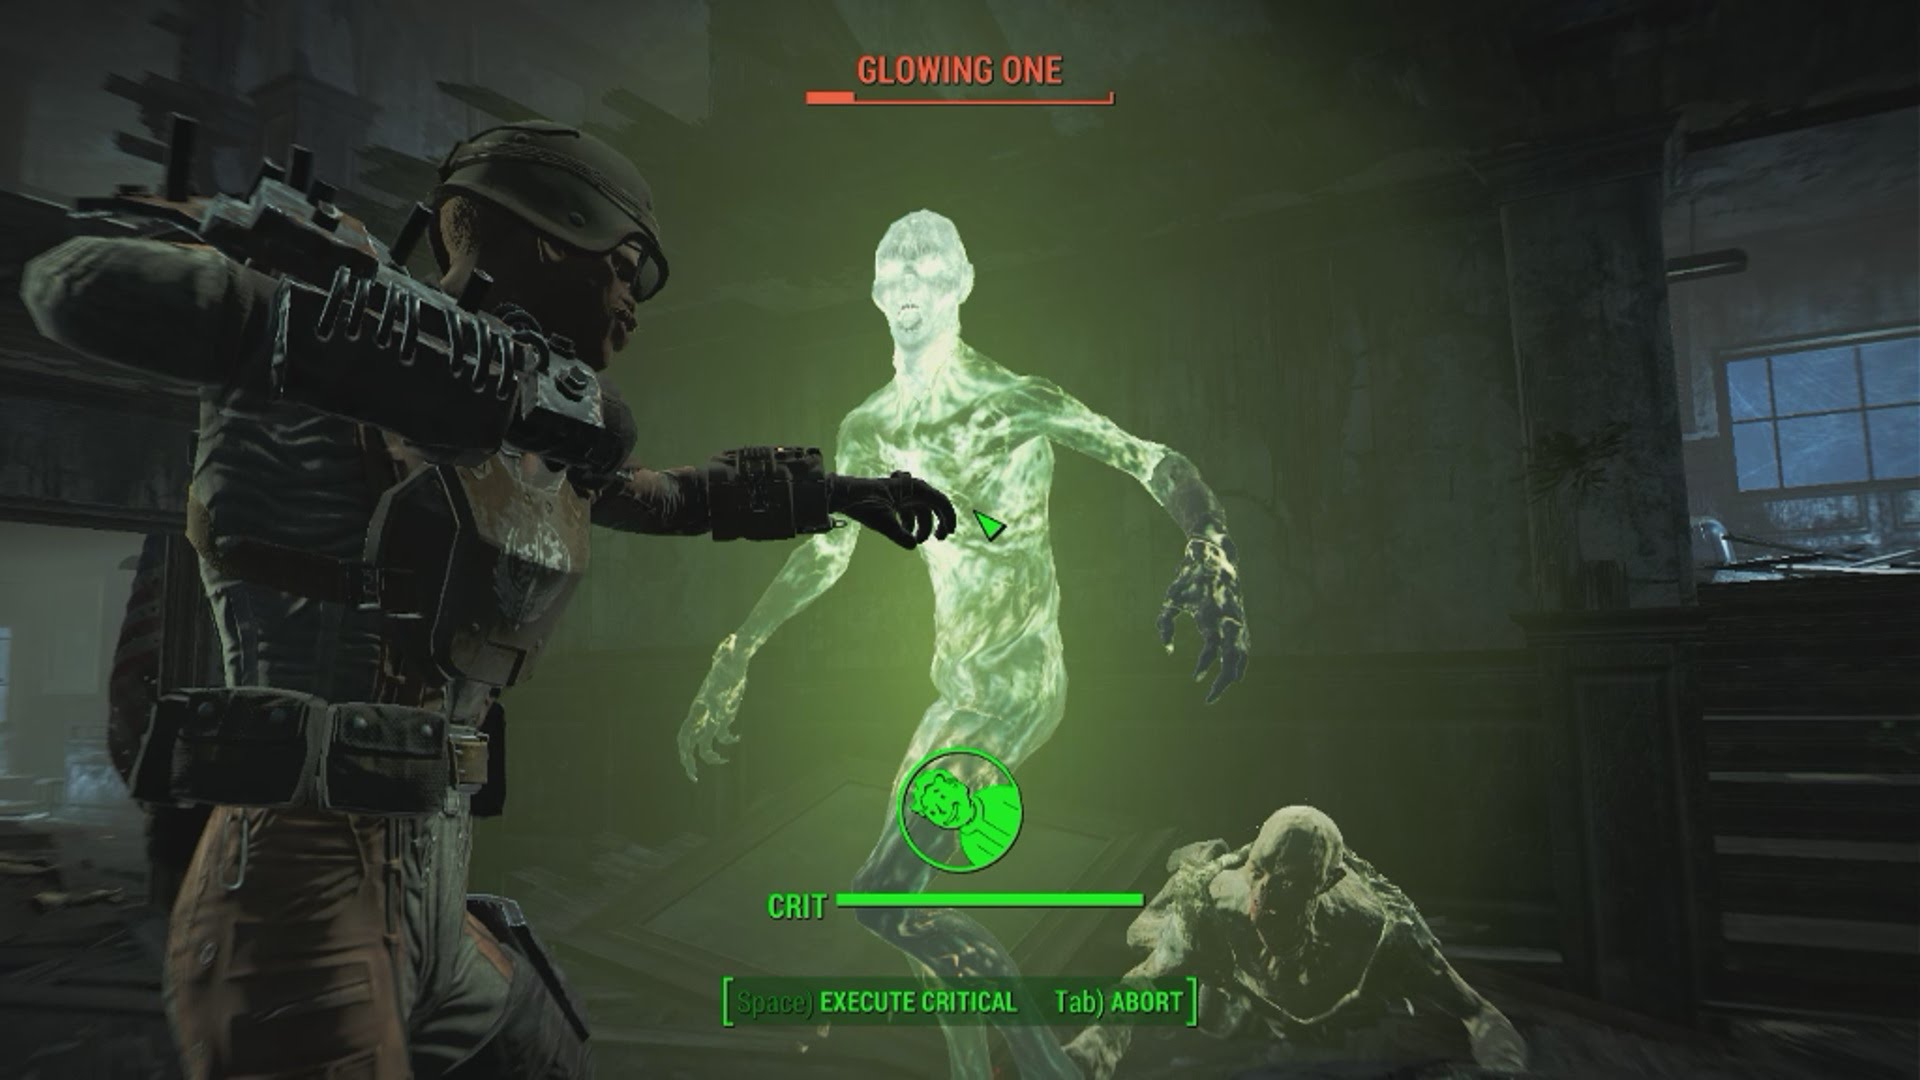 Glowing one fallout